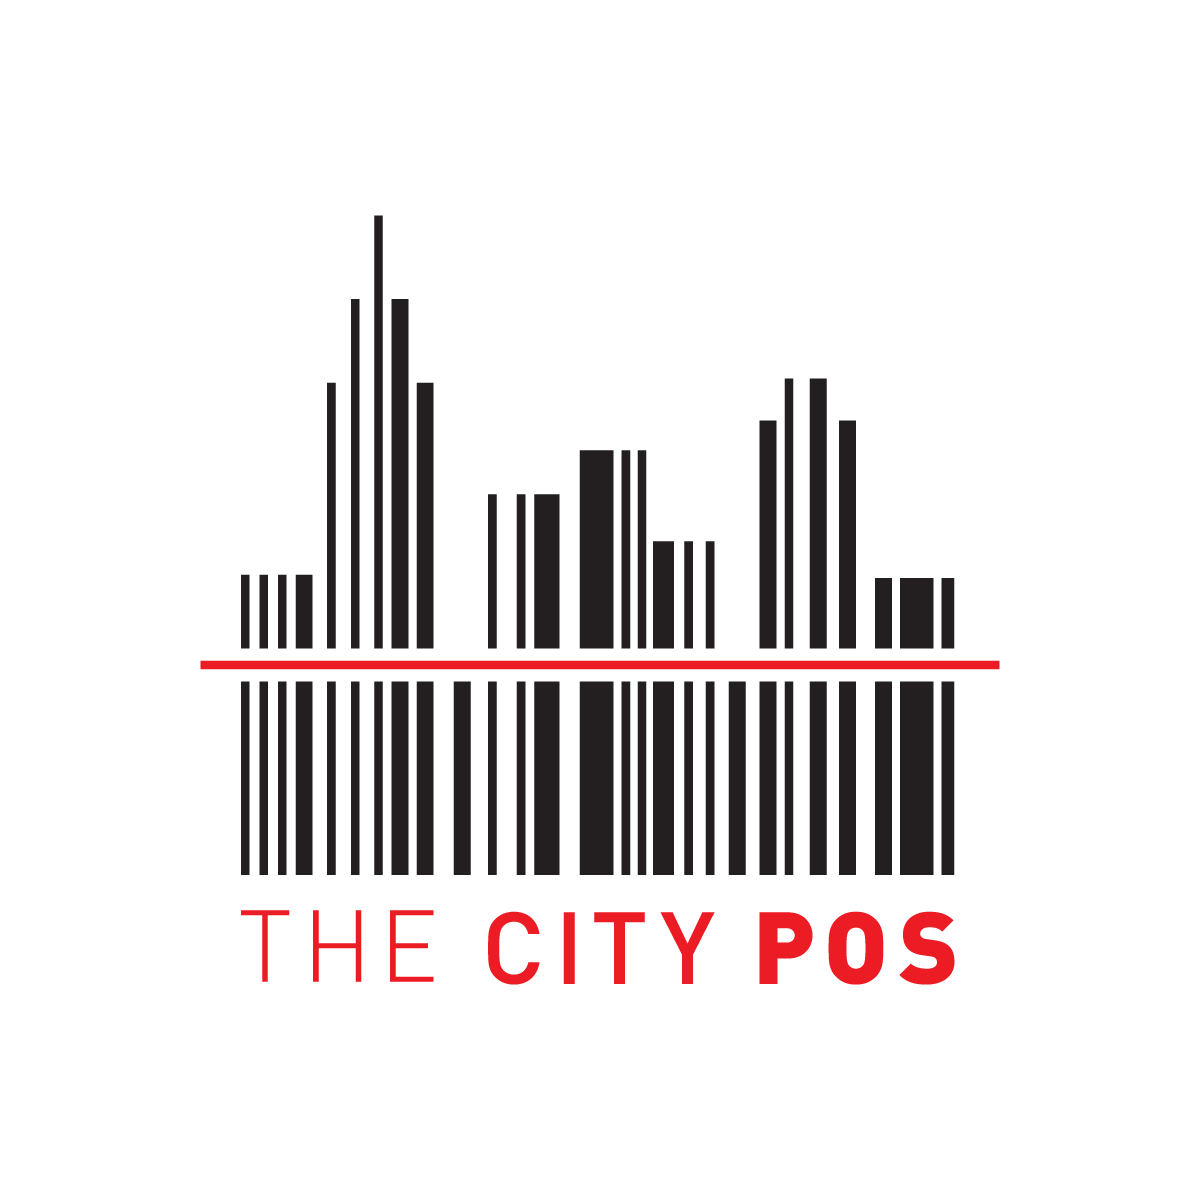 The City POS logo